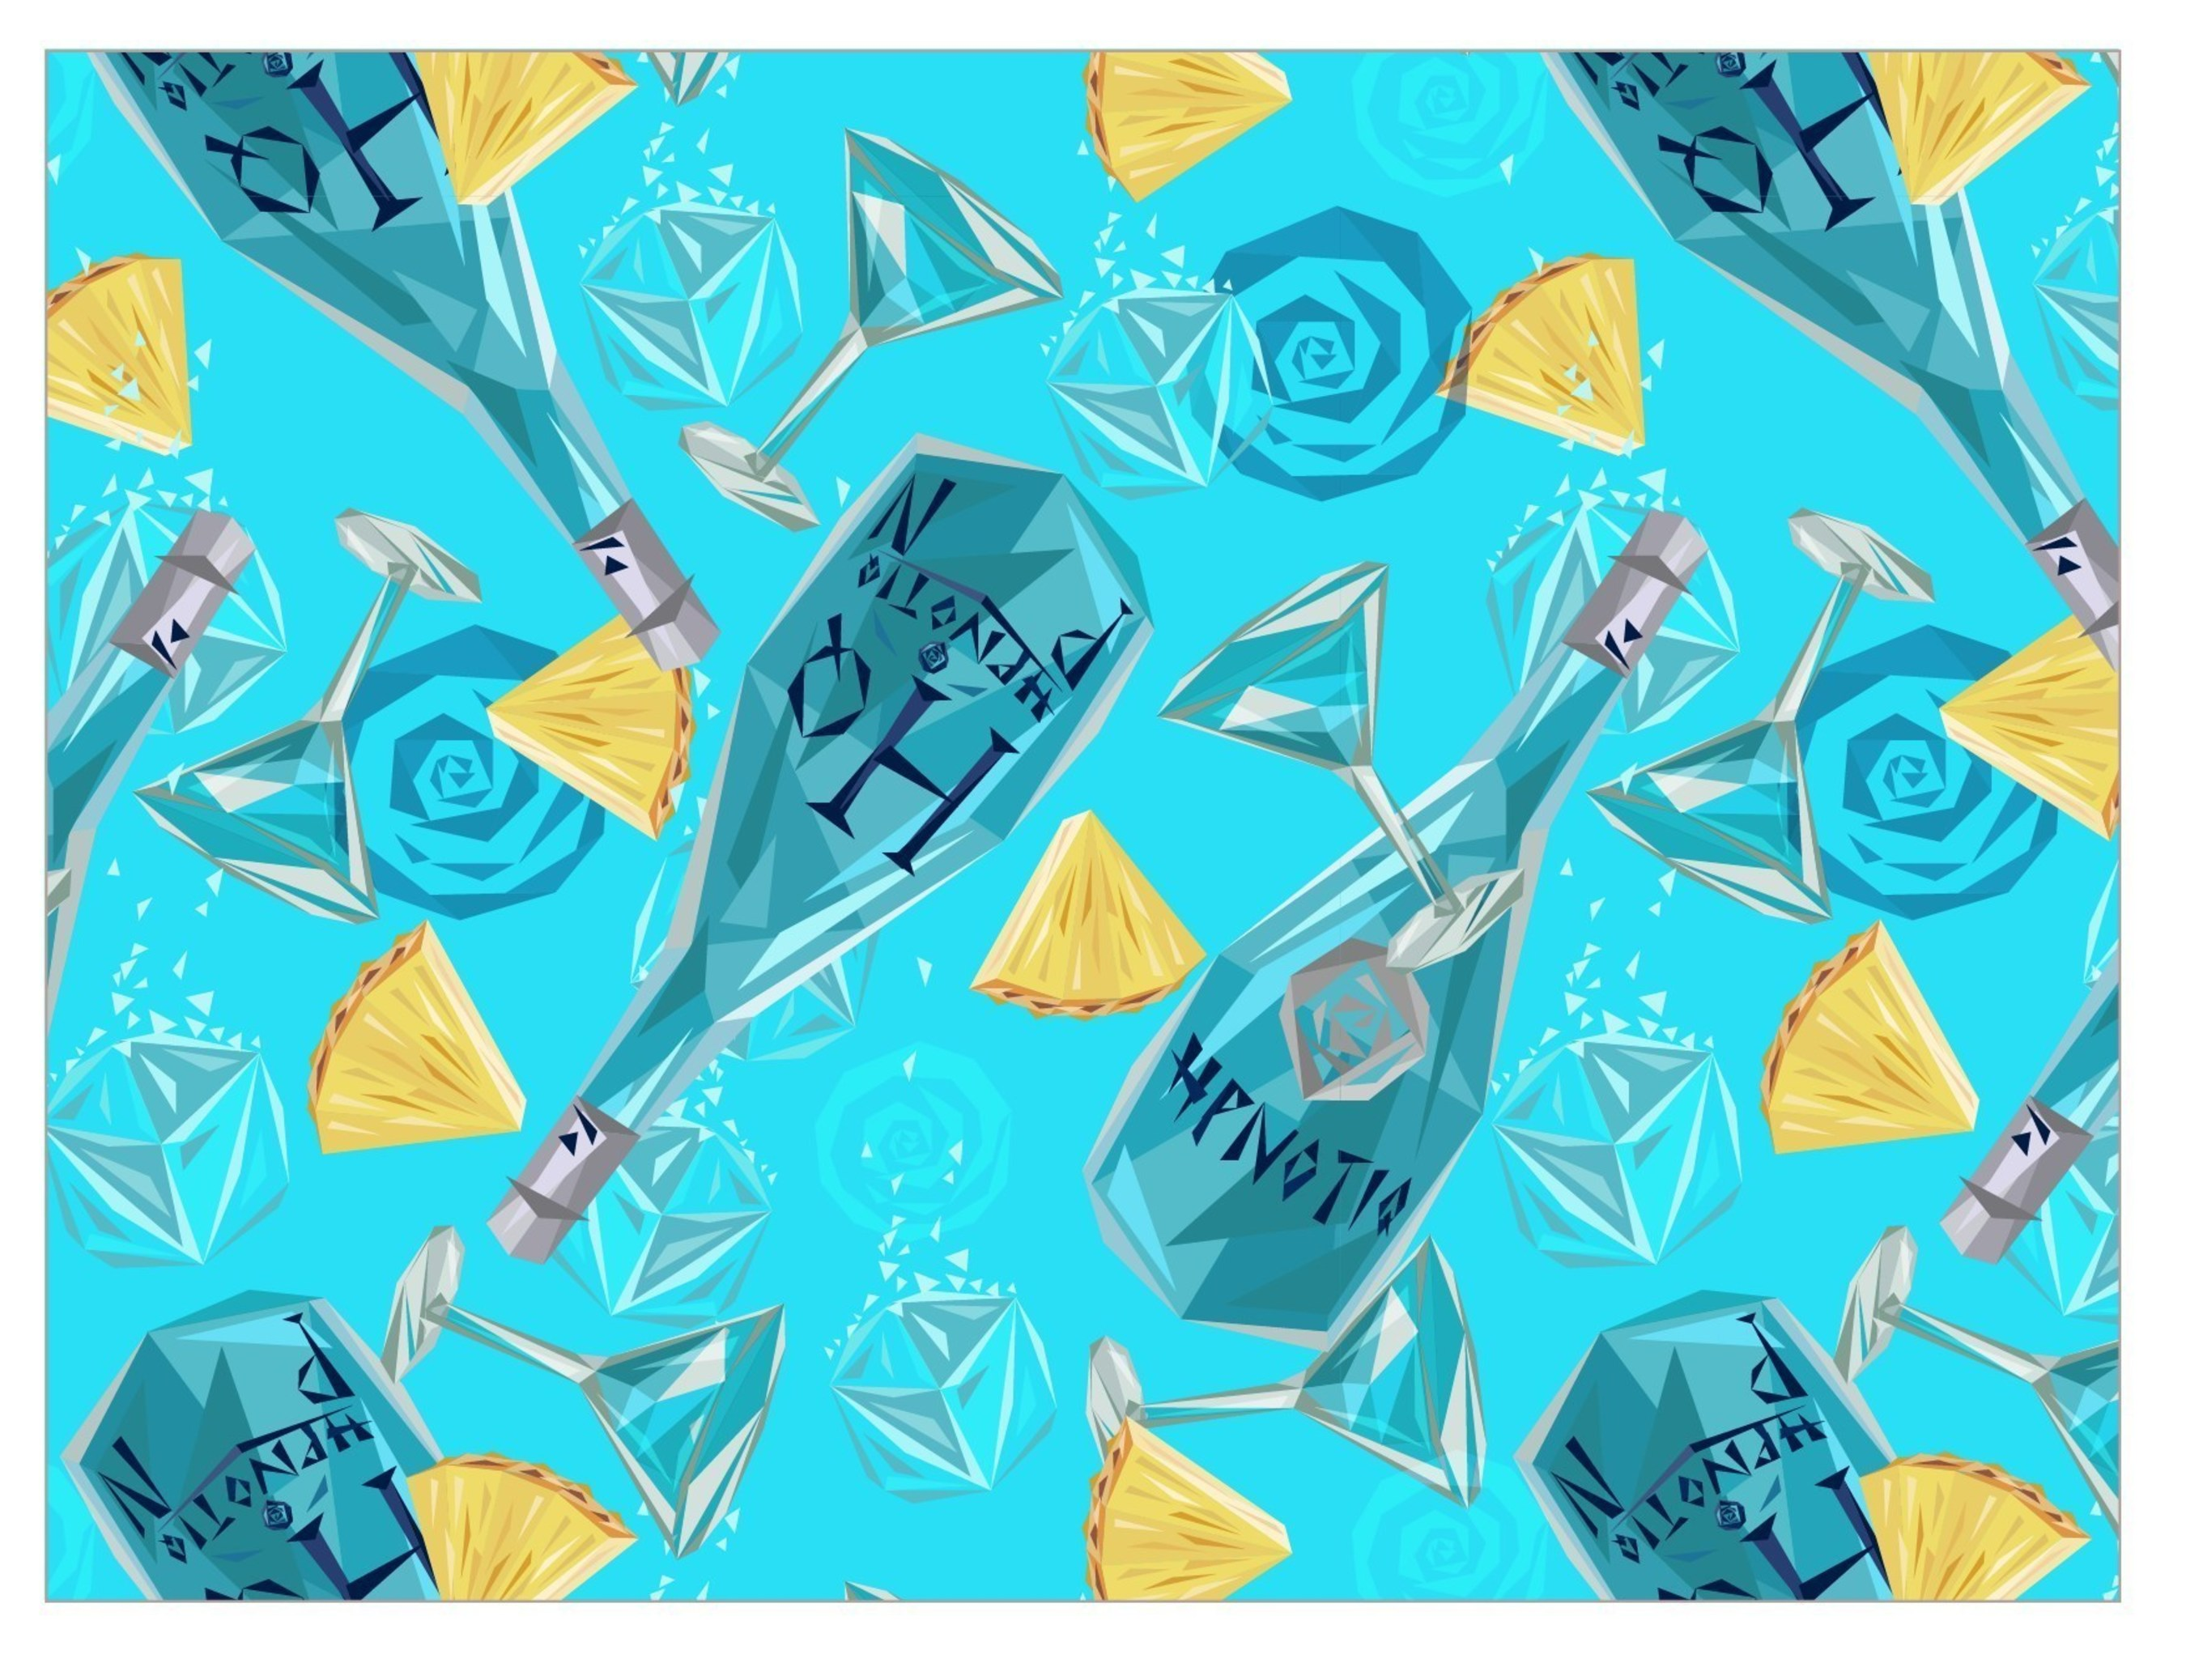 The Hpnotiq Pineapple Passion, as reimagined by artist and brand collaborator Naturel for the new #Since2001 campaign.